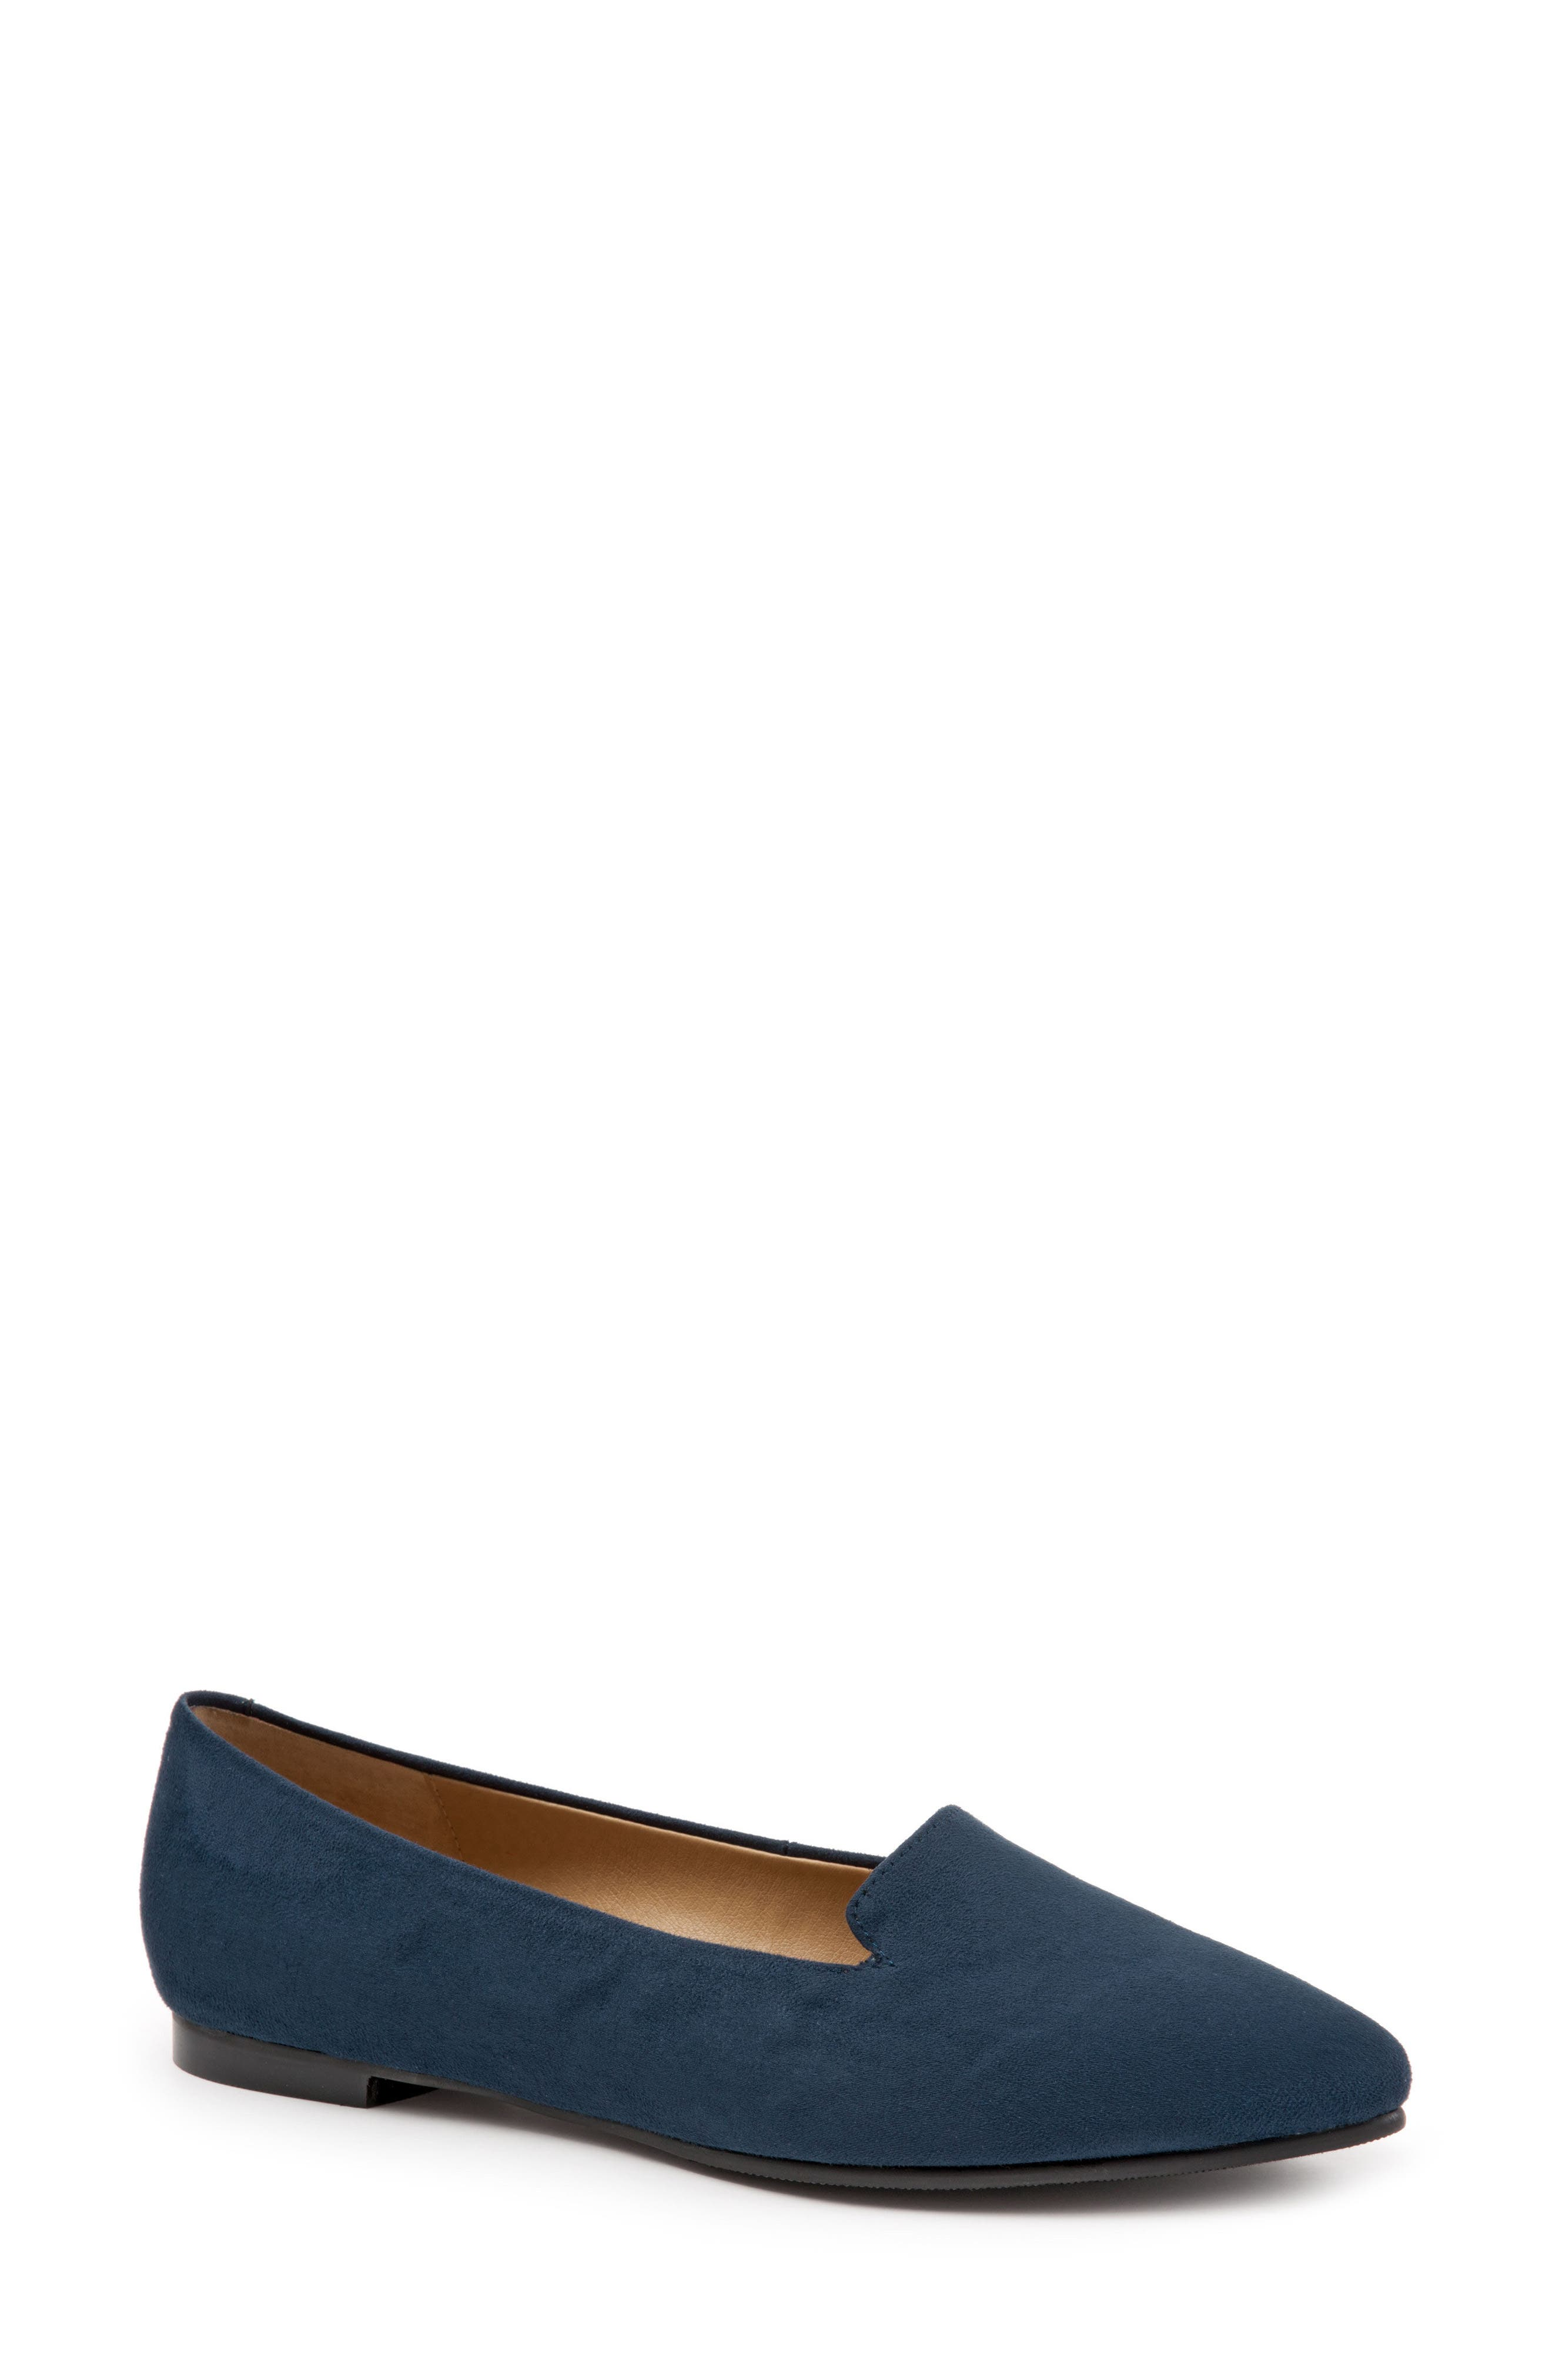 Trotters Harlowe Pointy Toe Loafer, Blue